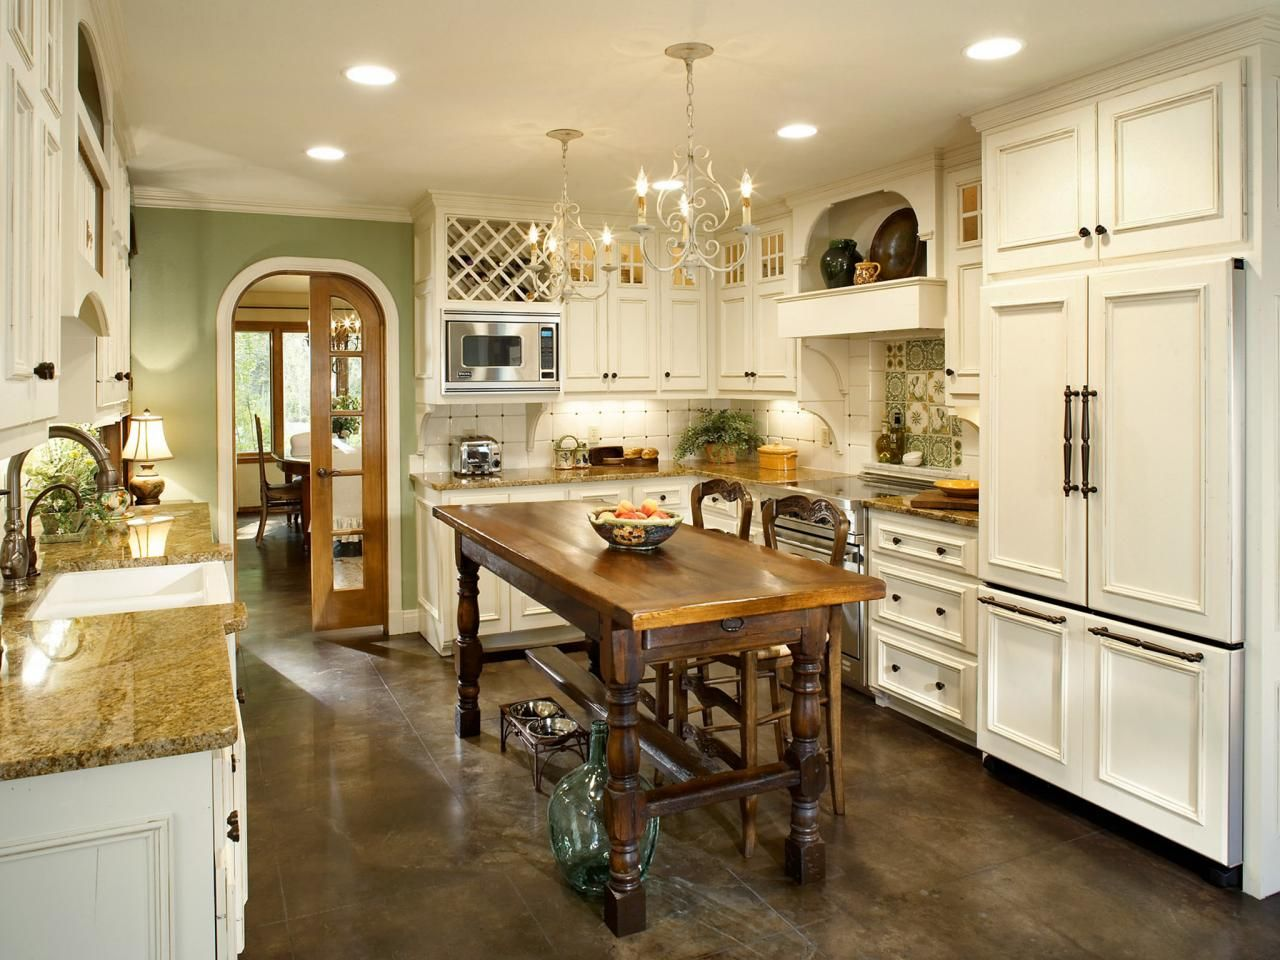 Amish Kitchen Cabinets Near Me French Country Kitchen Makeover Kitchen Ideas French